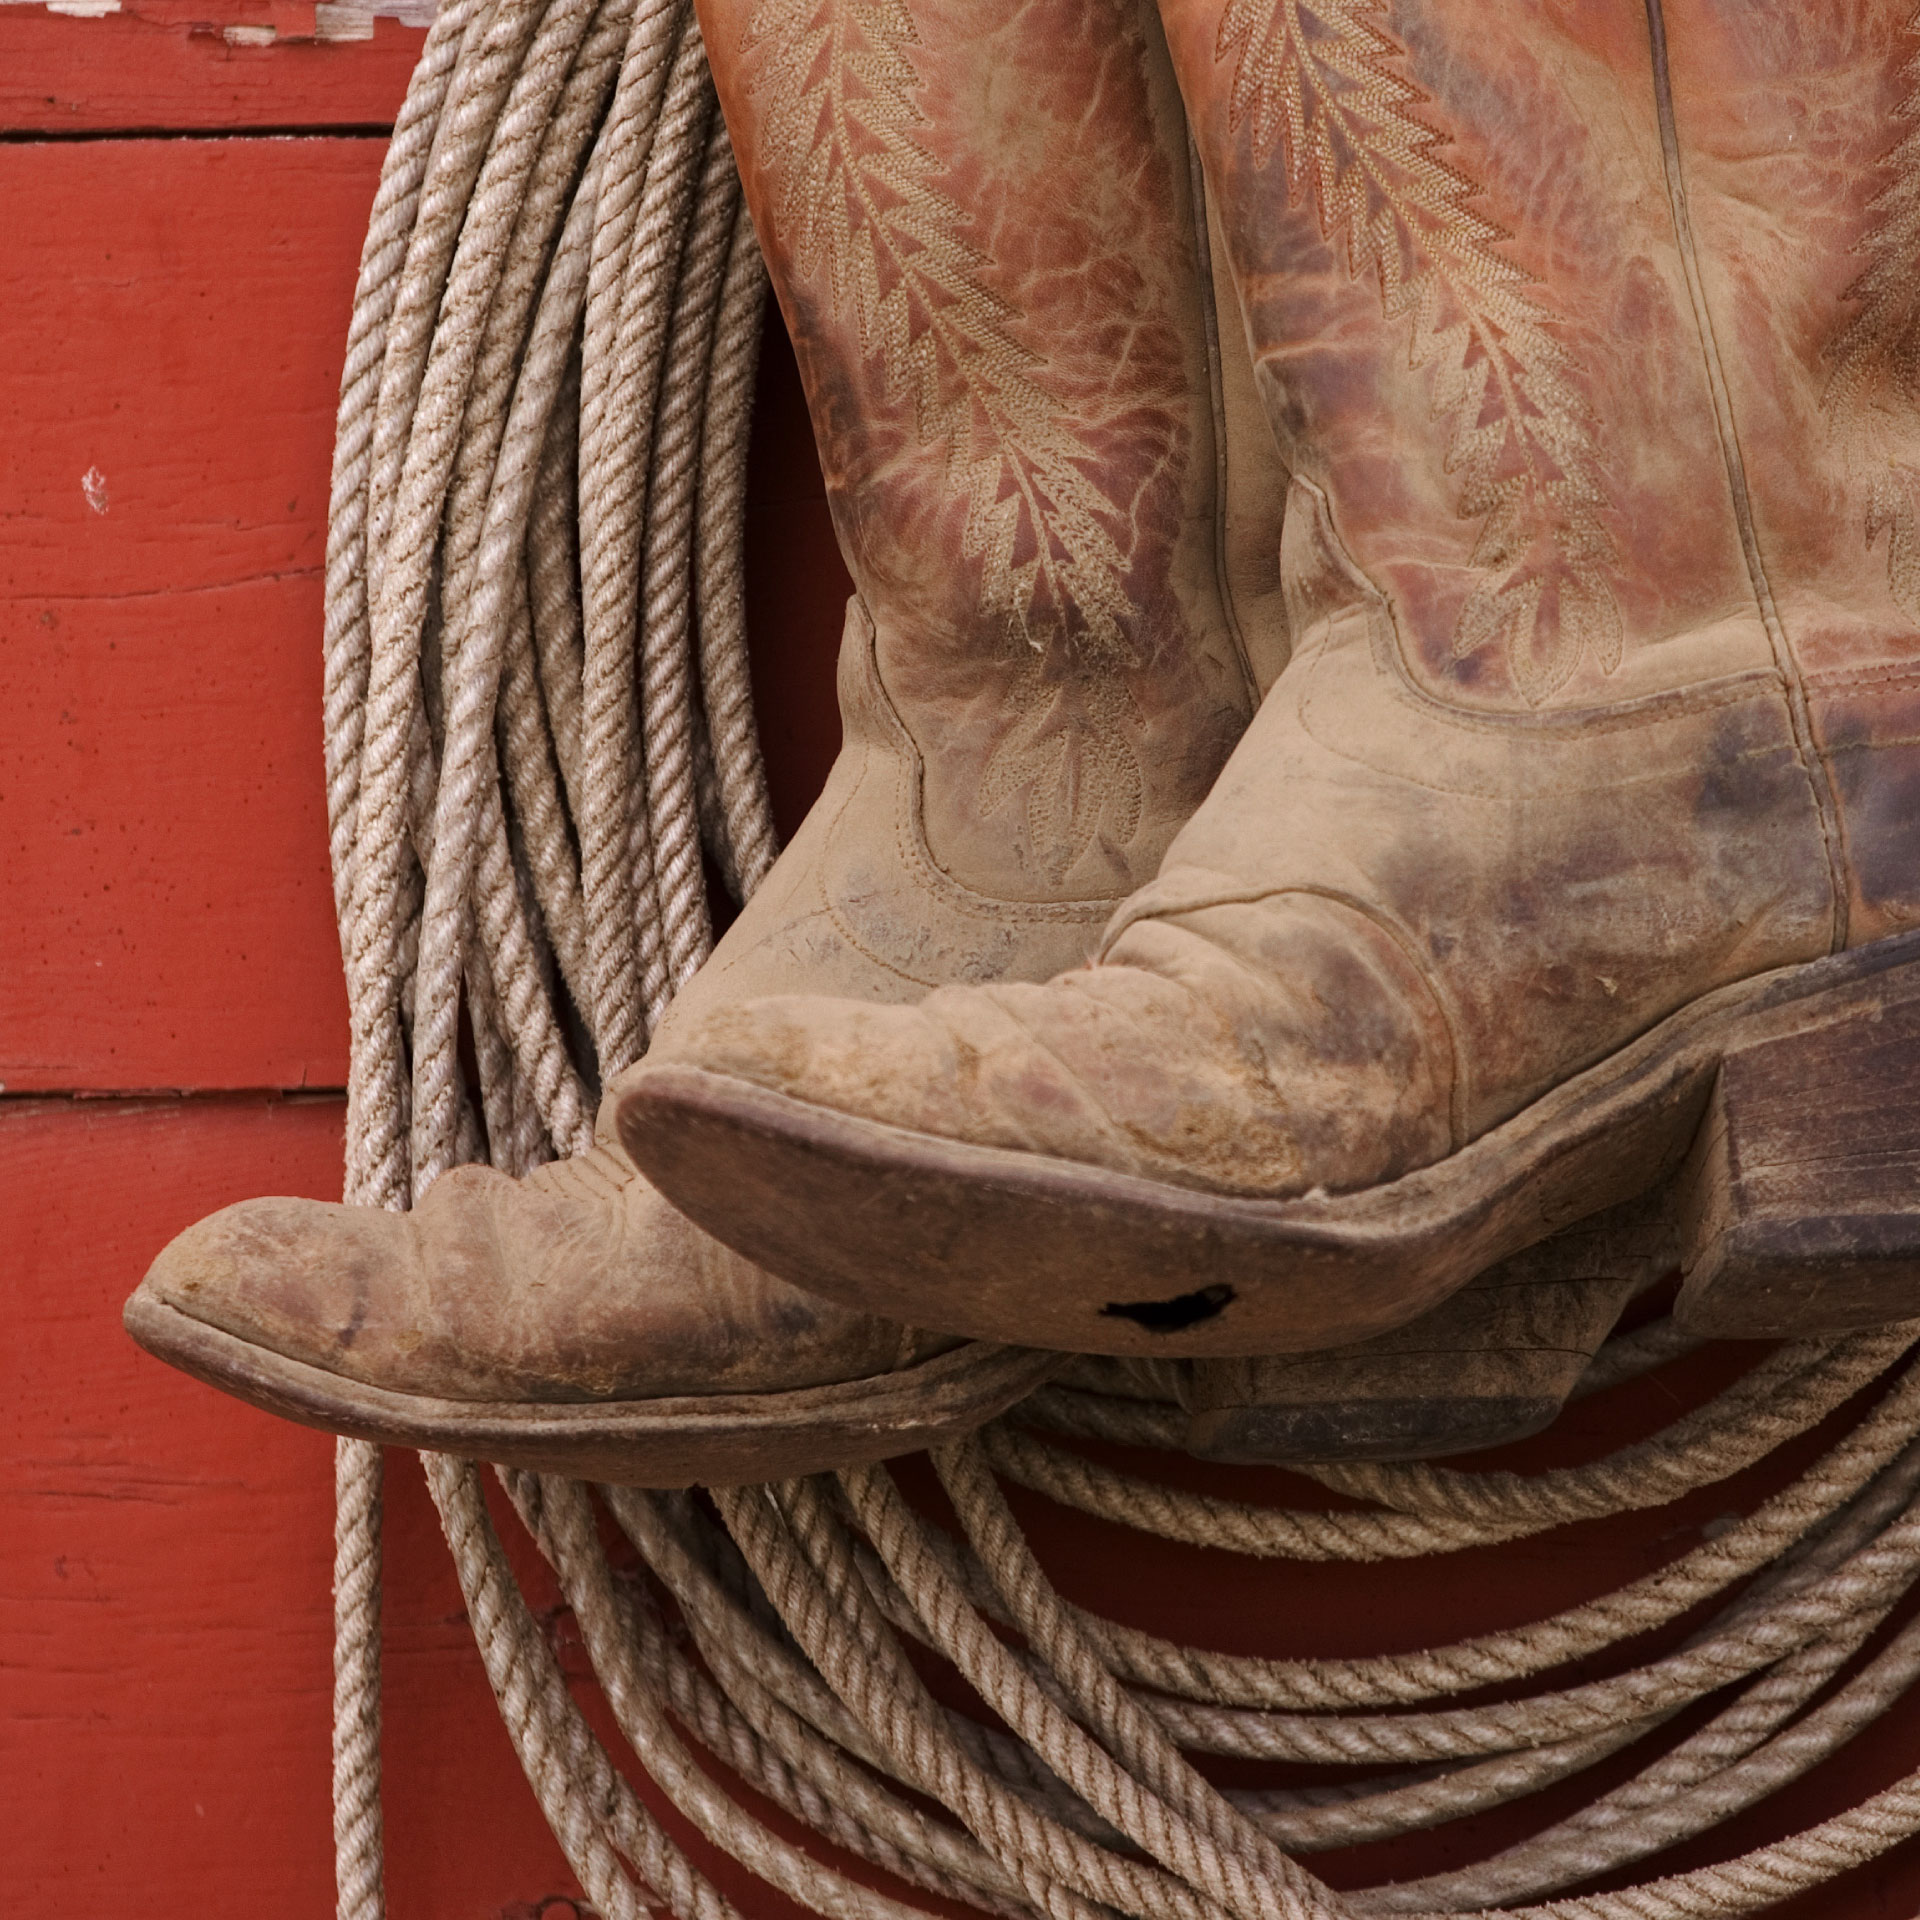 Cowboy Boot Care Tips: How to Maintain & Condition Cowboy Boots